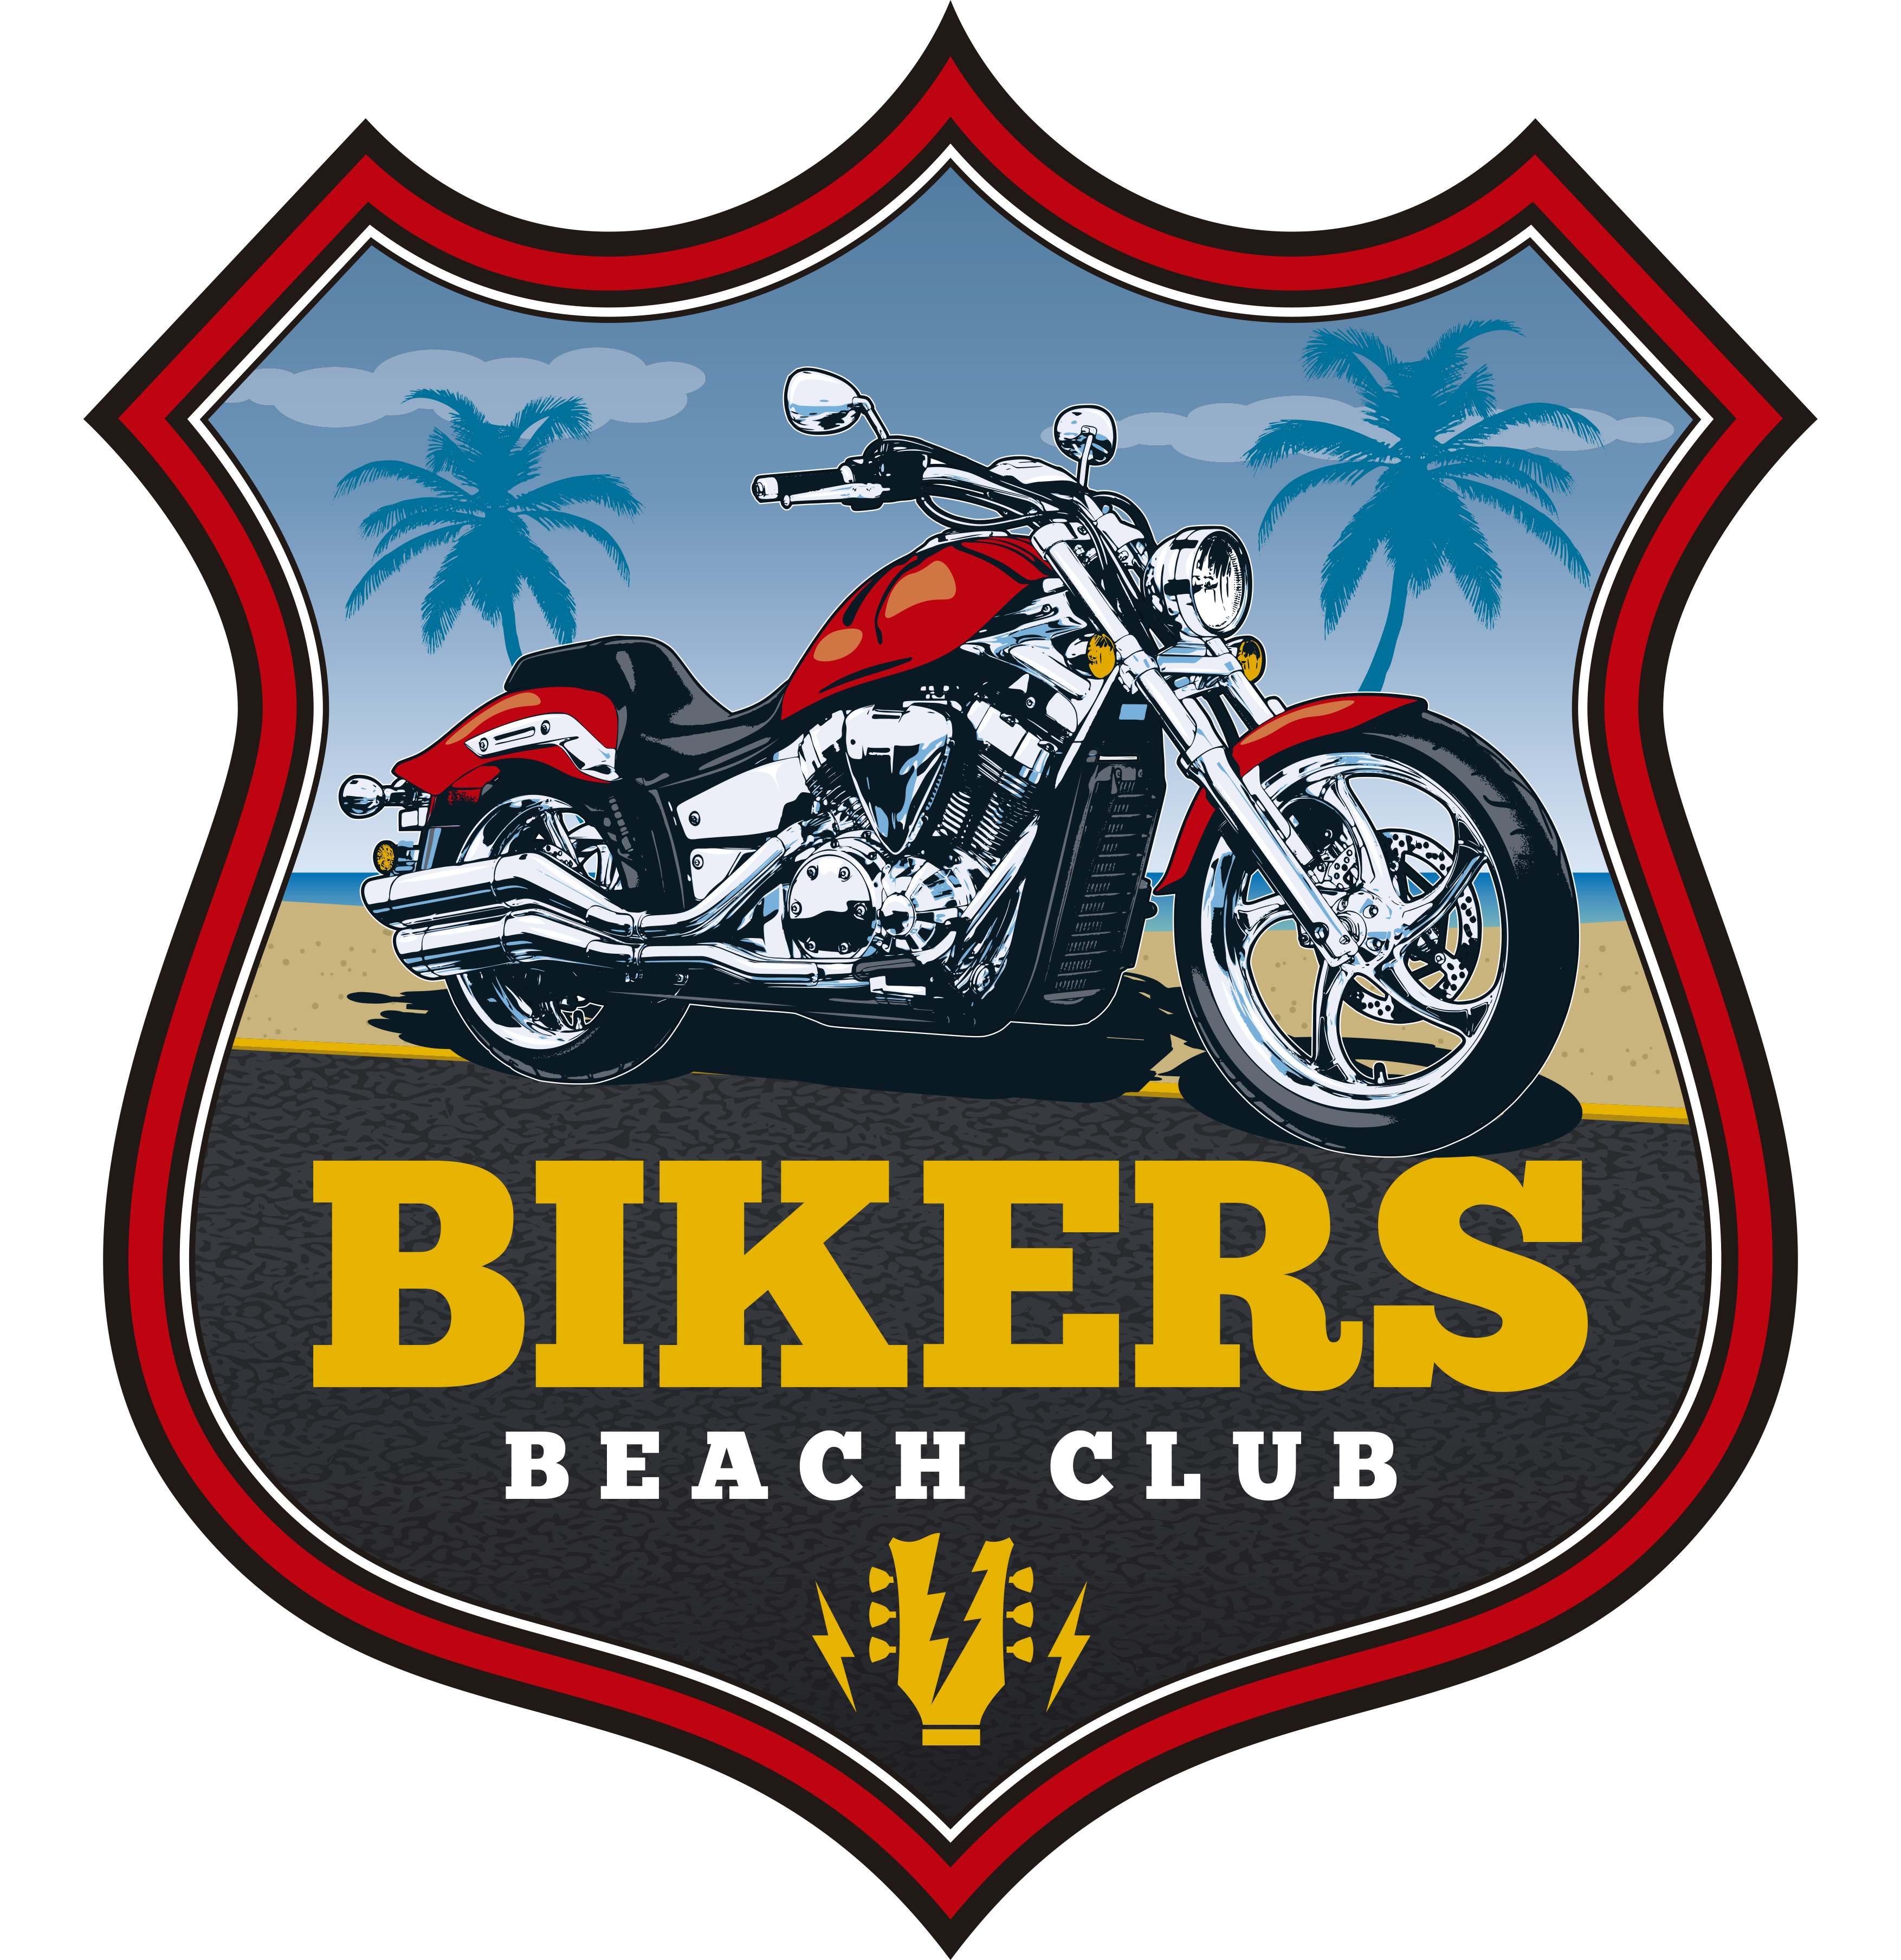 Bikers Beach Club